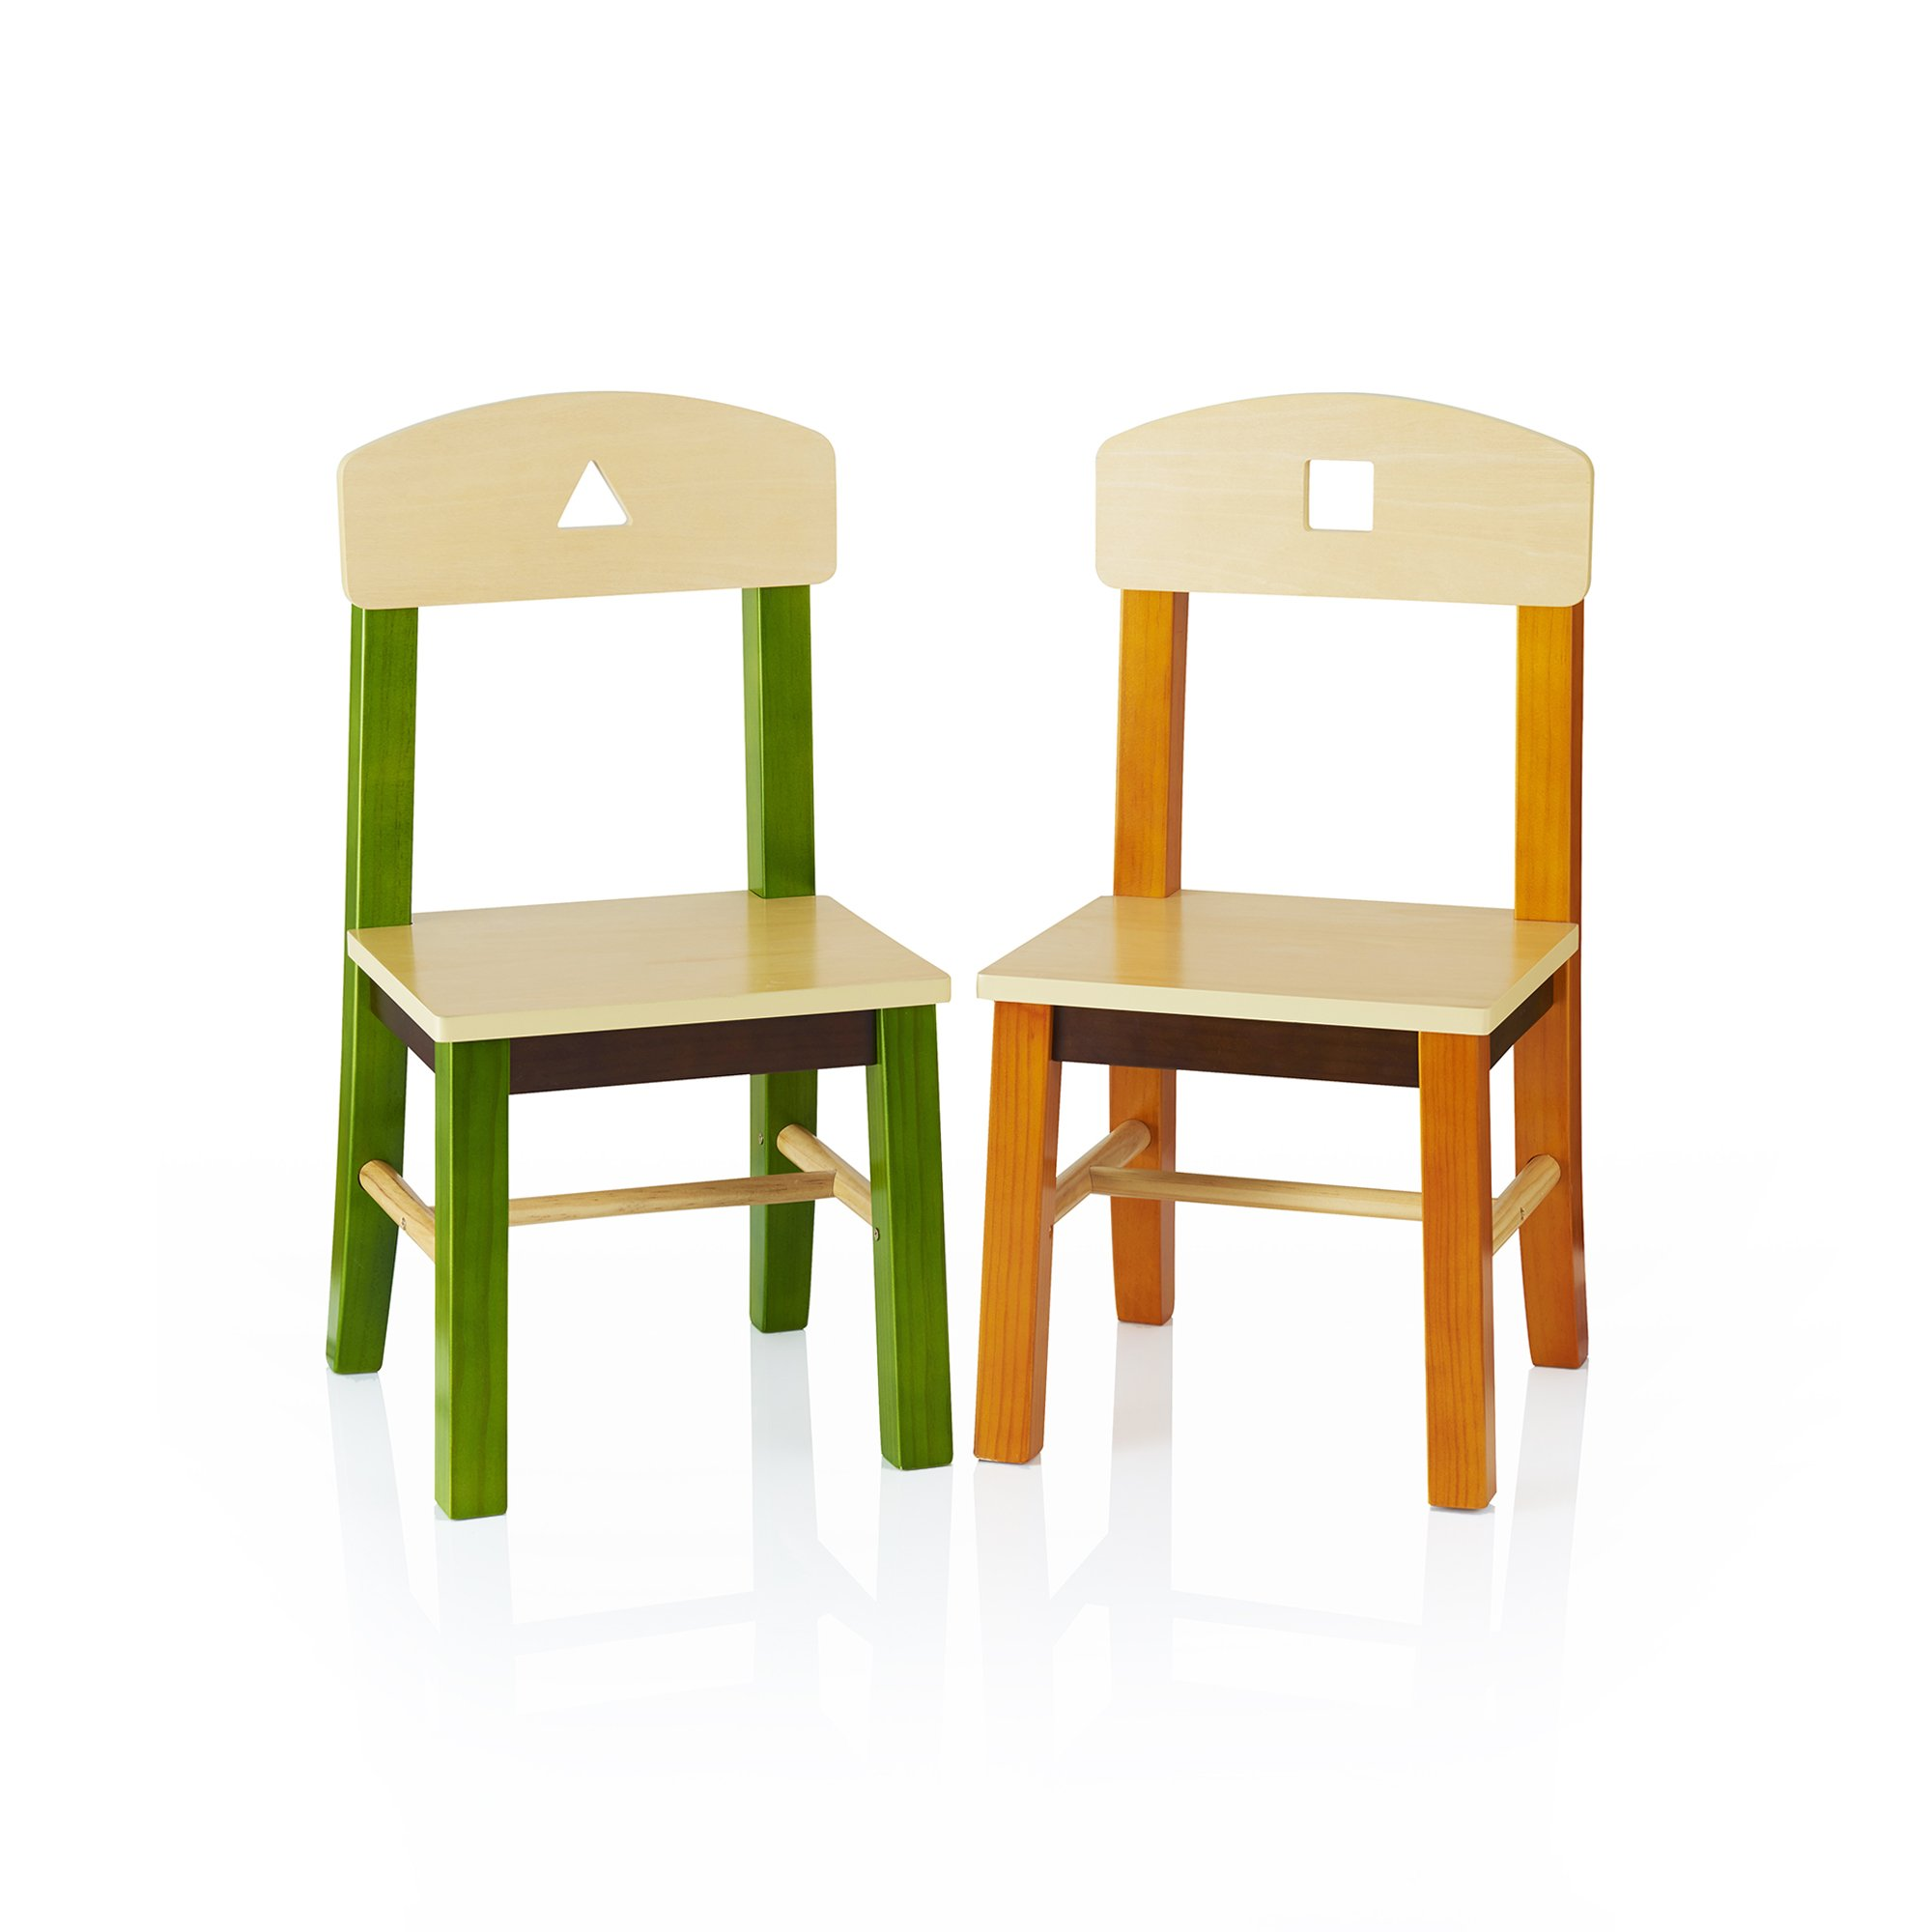 Guidecraft See and Store Extra Chairs Set of 2 - Kids School Furniture by Guidecraft (Image #1)